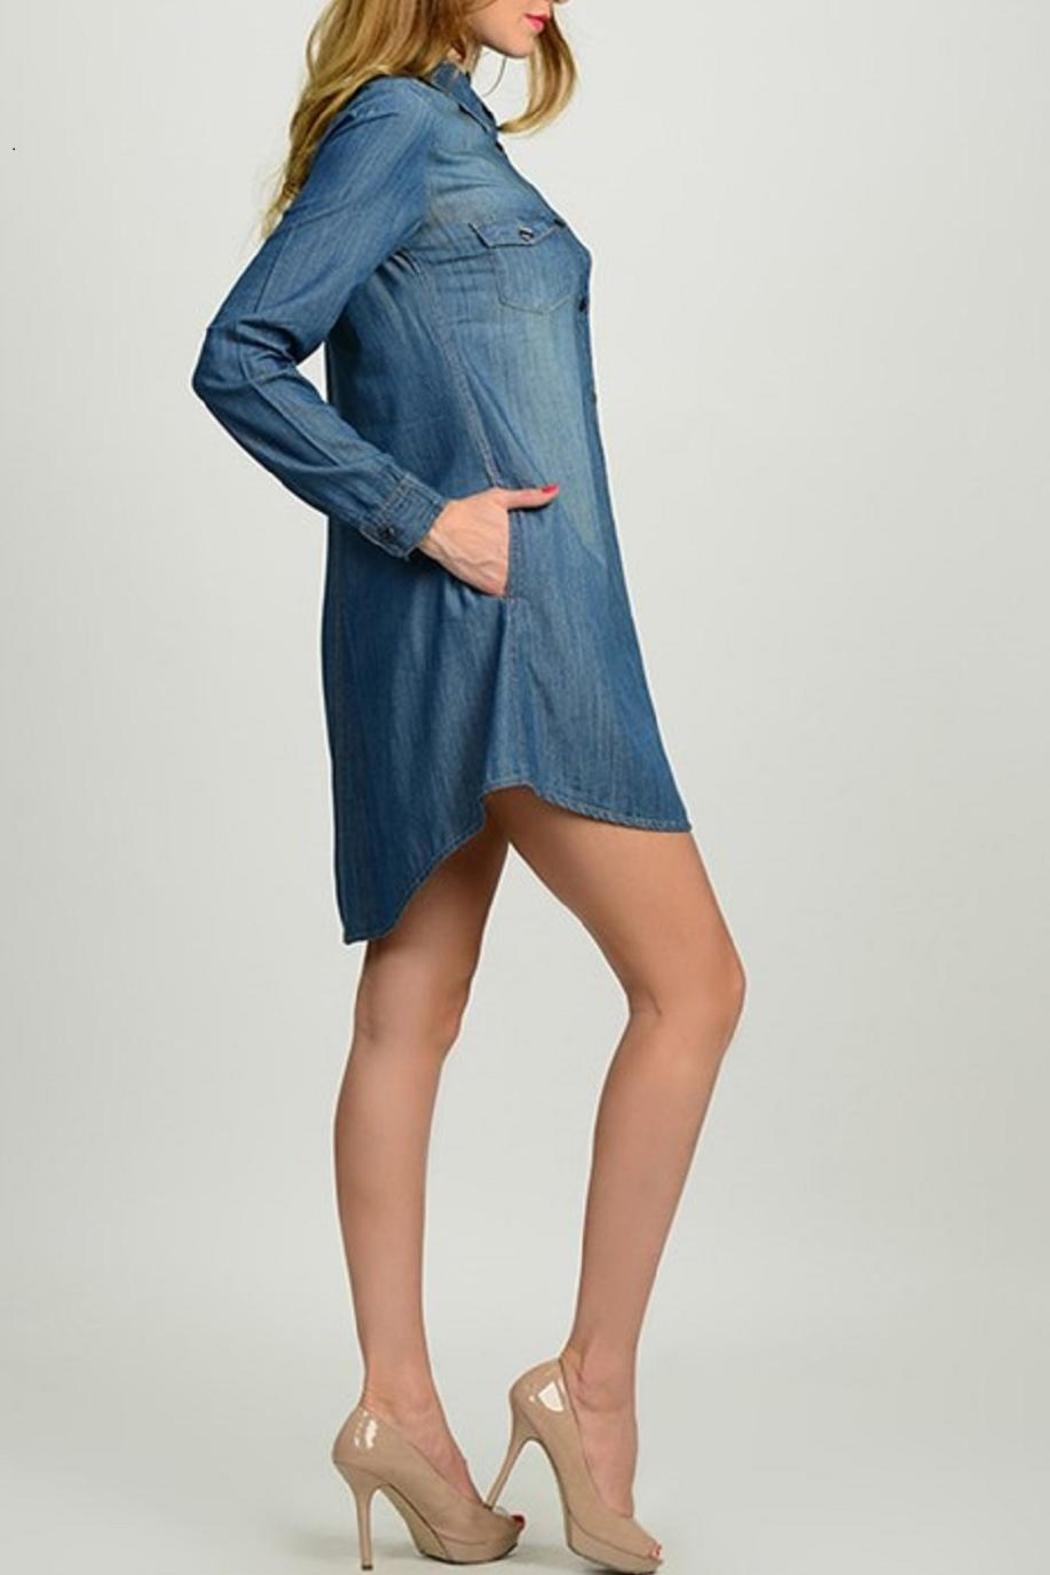 659b57375 Leshop Denim Shirt Dress from Missouri by Domi More — Shoptiques